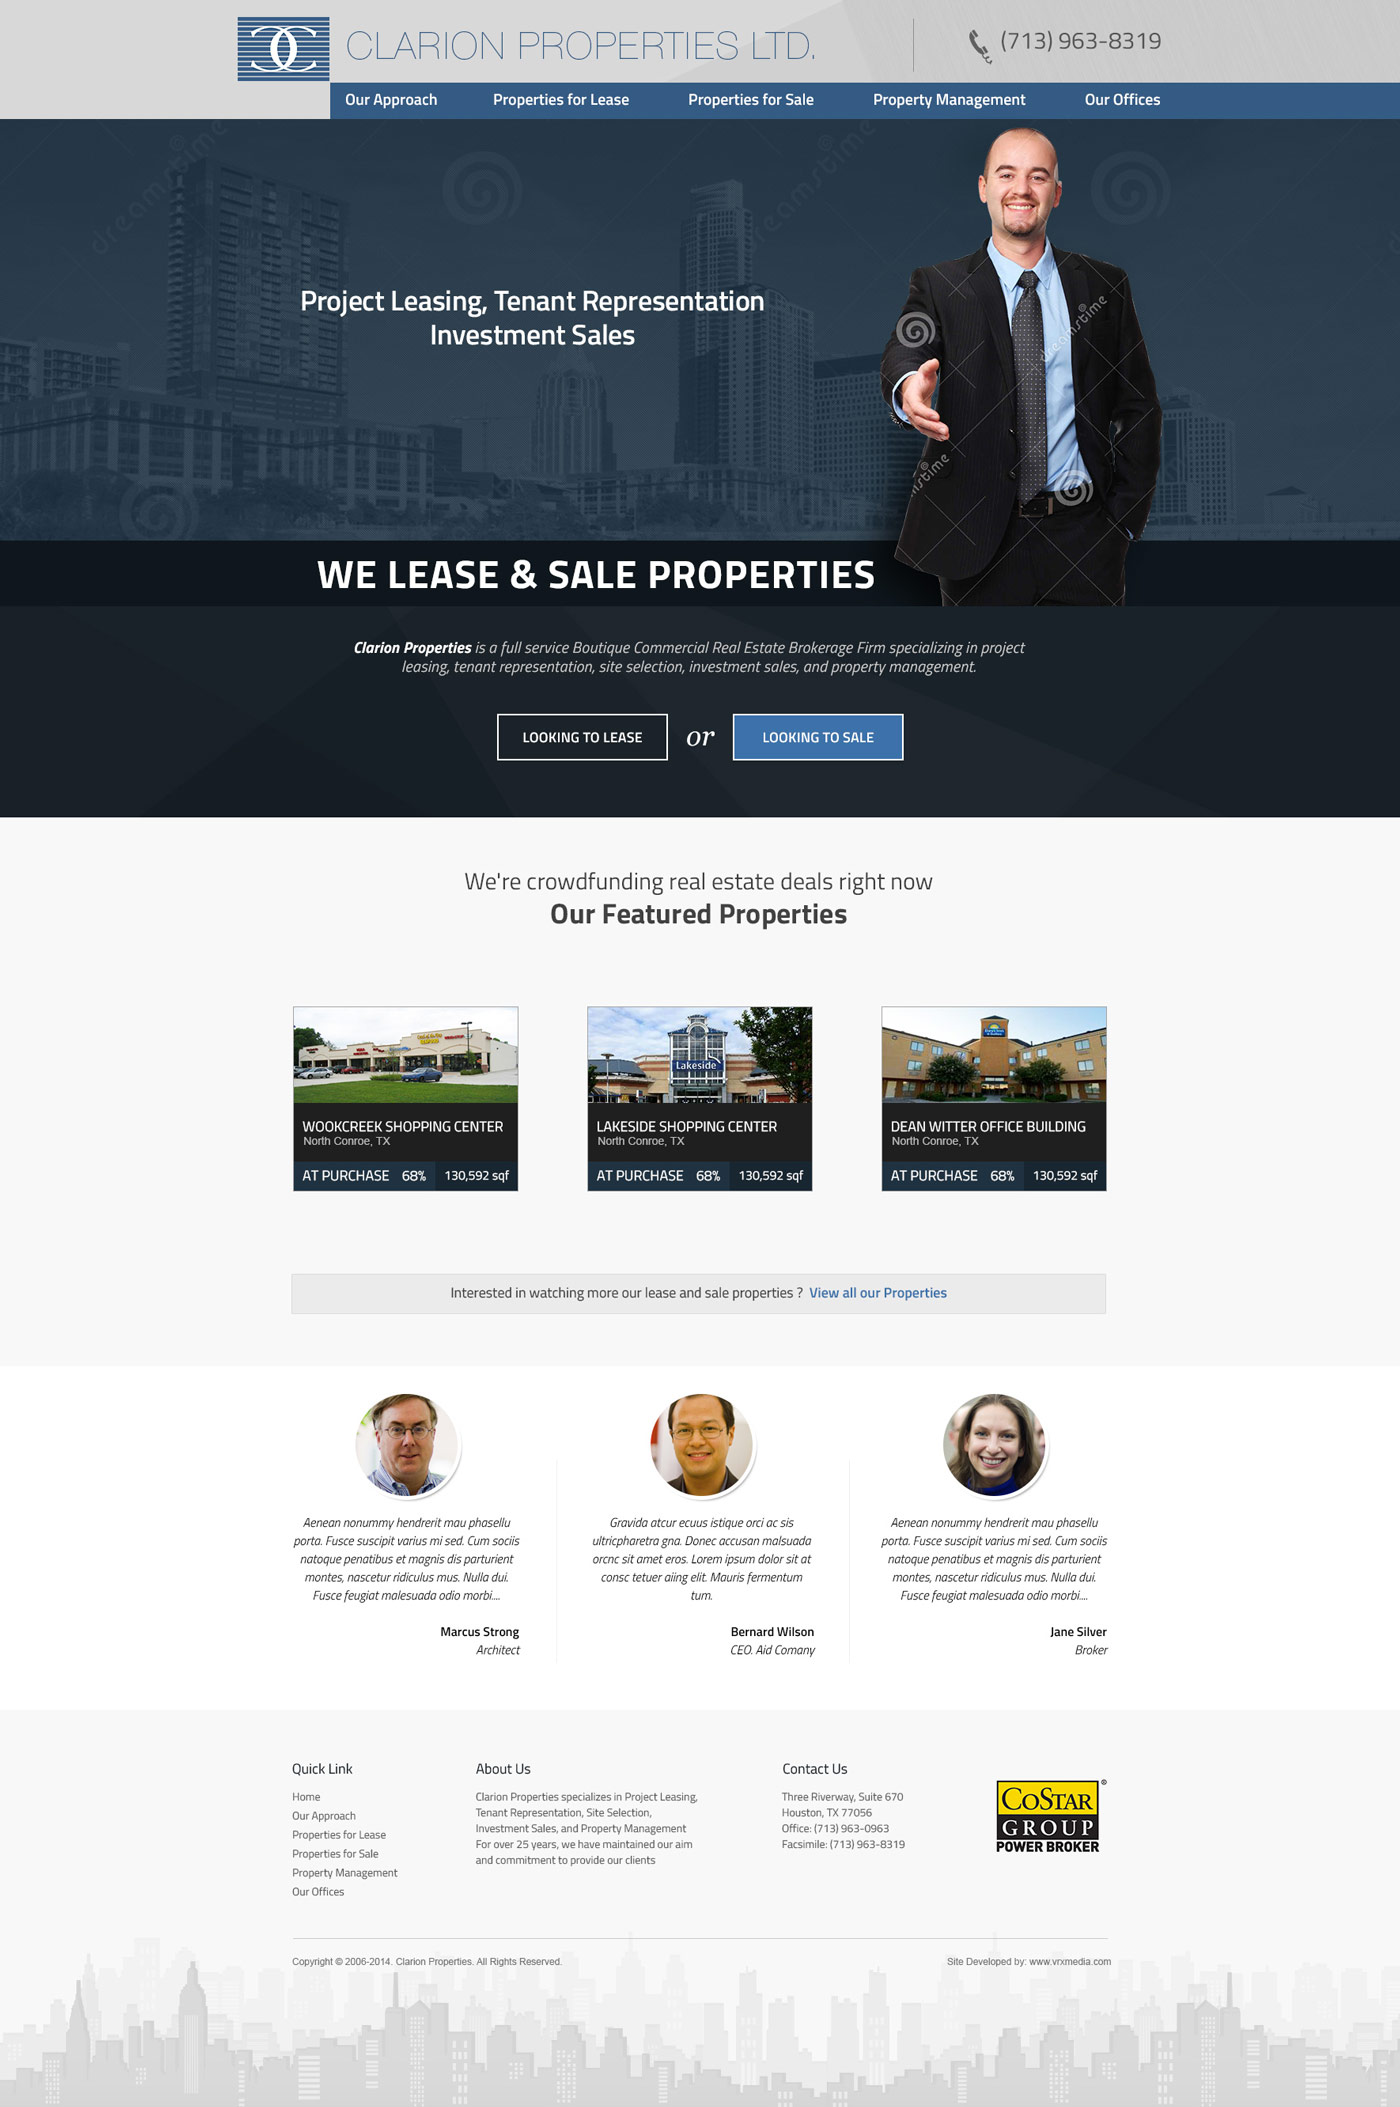 clarion-properties-propose